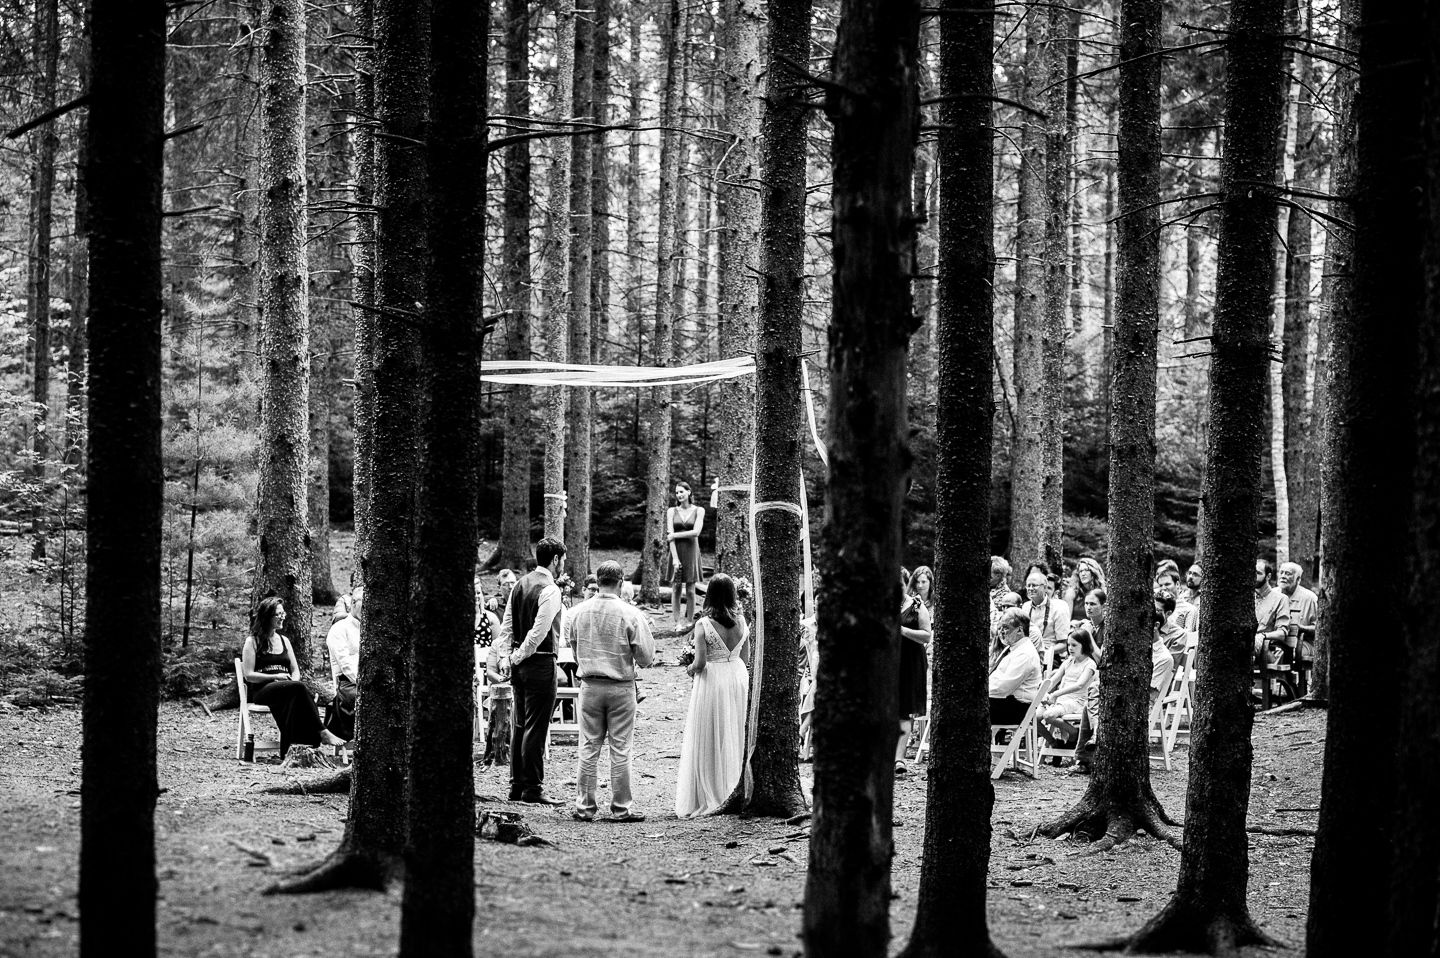 gorgeous old pine trees surrounded the wedding ceremony